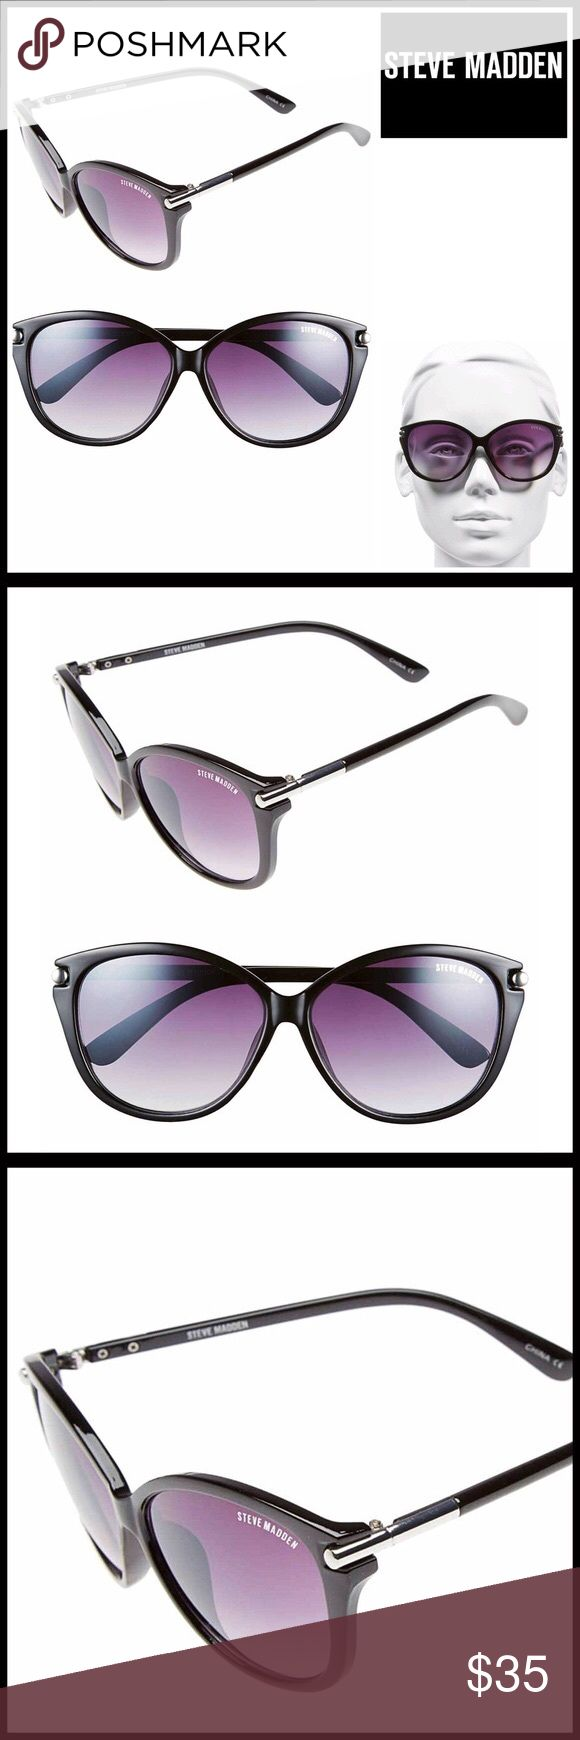 STEVE MADDEN SUNNIES Sun Glasses 💟NEW WITH TAGS💟  RETAIL PRICE: $48   STEVE MADDEN SUNNIES Sun Glasses  * 100% UV protection, non-polarized  * Tinted shades  * Size: Approx 57-13-130mm (eye-bridge-temple)  * Plastic frame  * Logo detail  * Gray gradient lens  * Retro chic silhouette   Material: plastic  Color: Black Item#:   🚫No Trades🚫 ✅ Offers Considered*✅  *Please use the blue 'offer' button to submit an offer Steve Madden Accessories Sunglasses